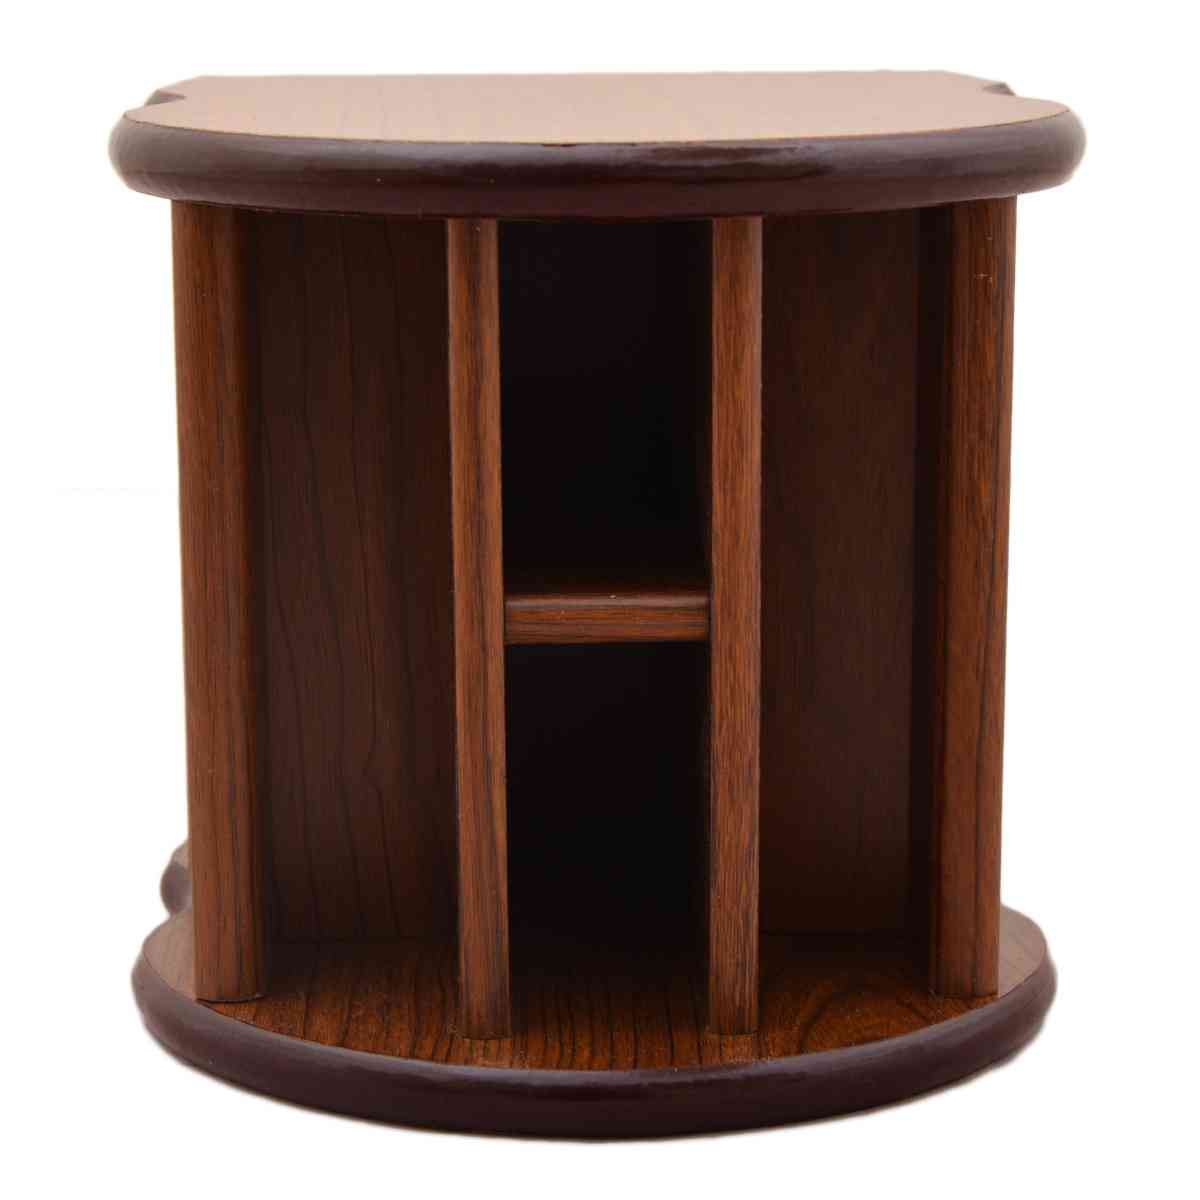 Beautiful Hand Crafted Wooden Stationary Holder (For Offices, Home Use) - Brown